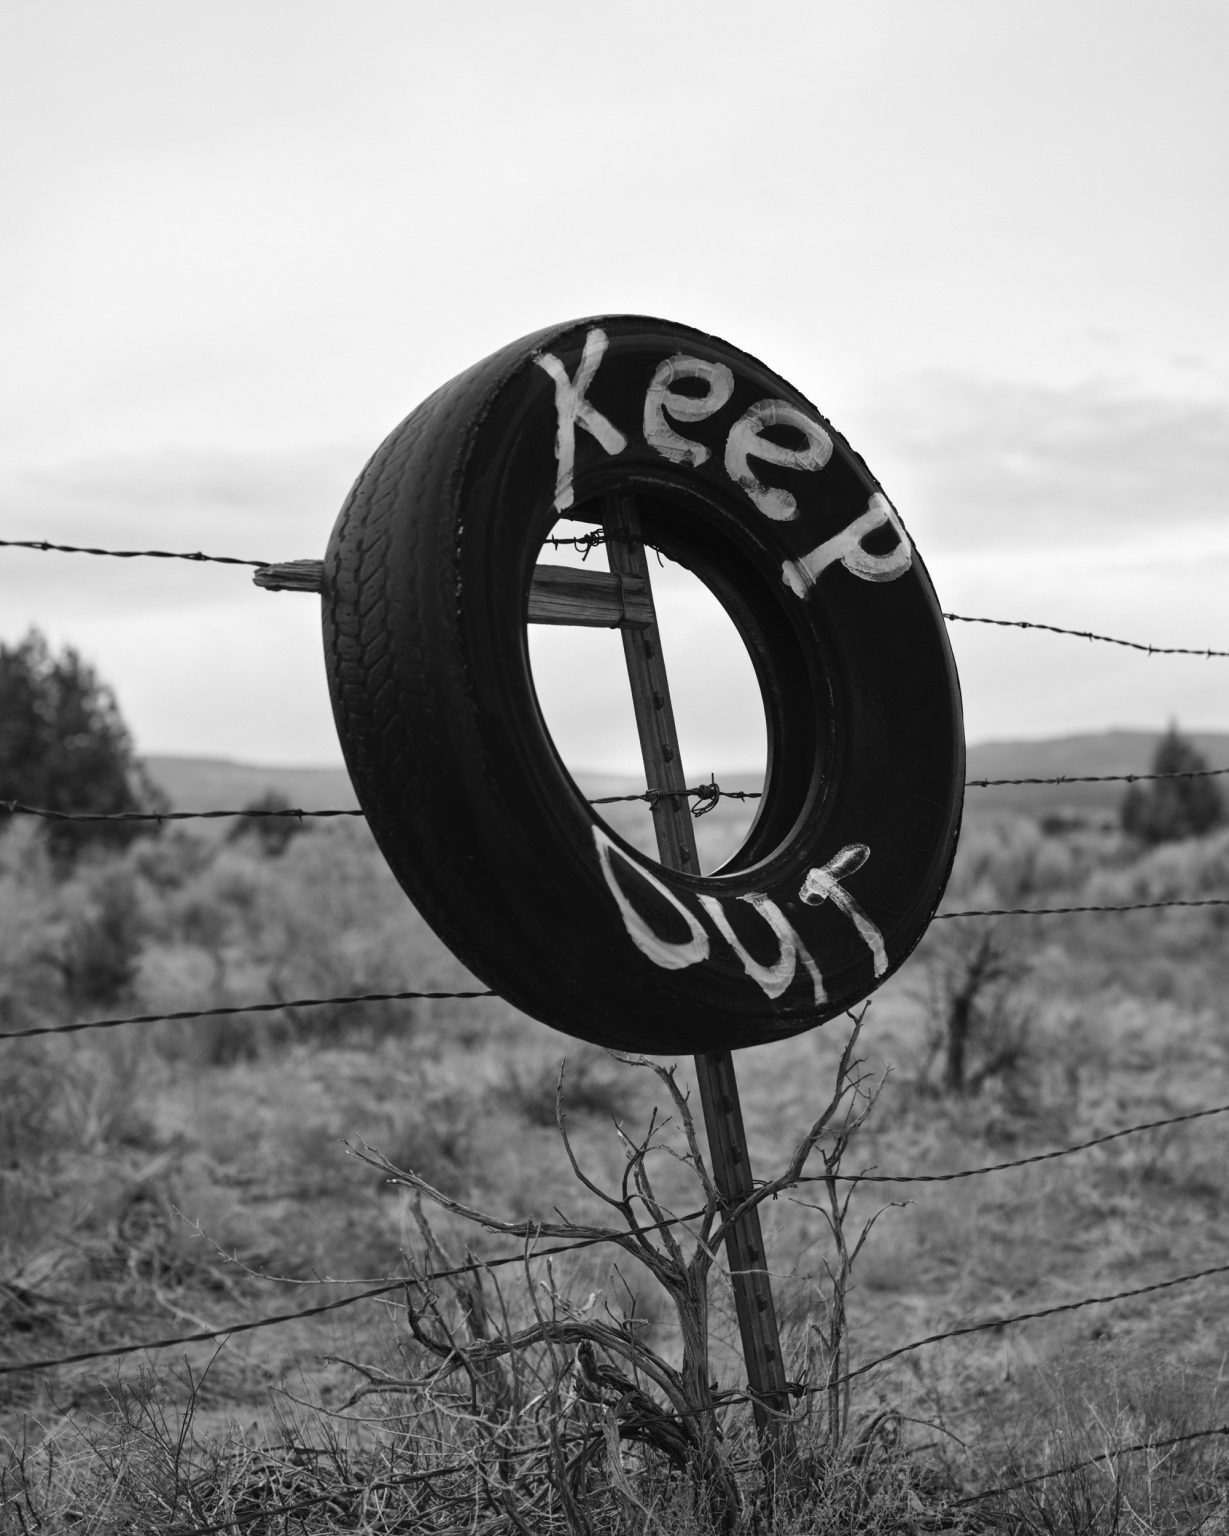 Keep out tire on fence surrounding private land. Utah, 2020